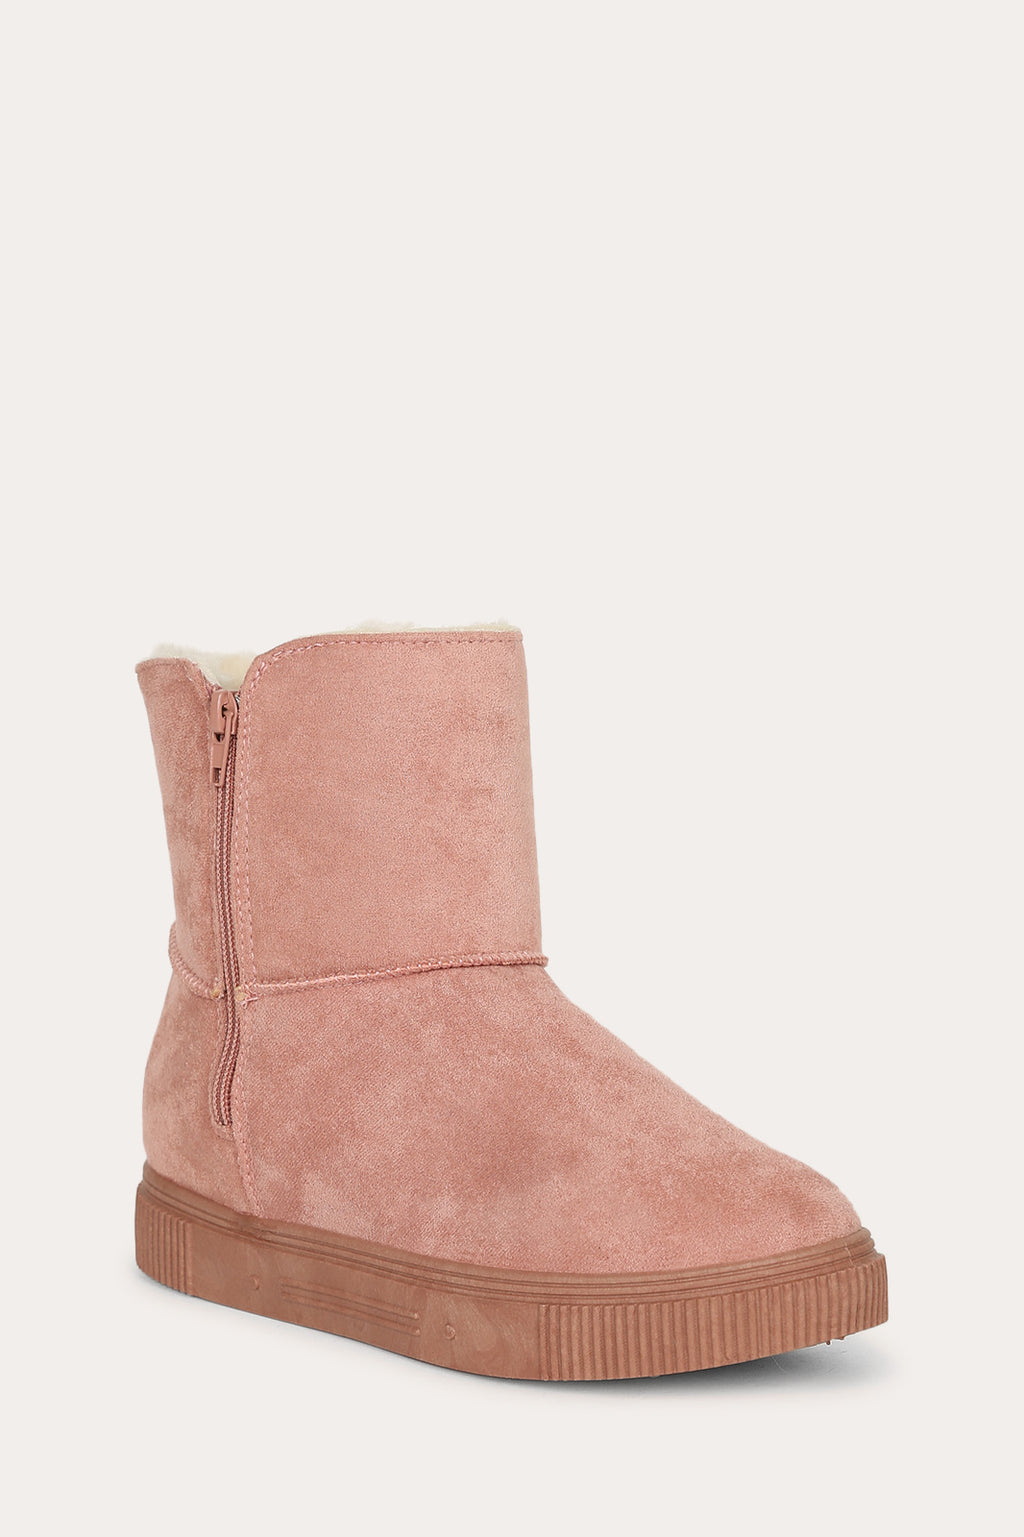 Bamboo Cozette-04 Pink Short Boot with Fur Inside